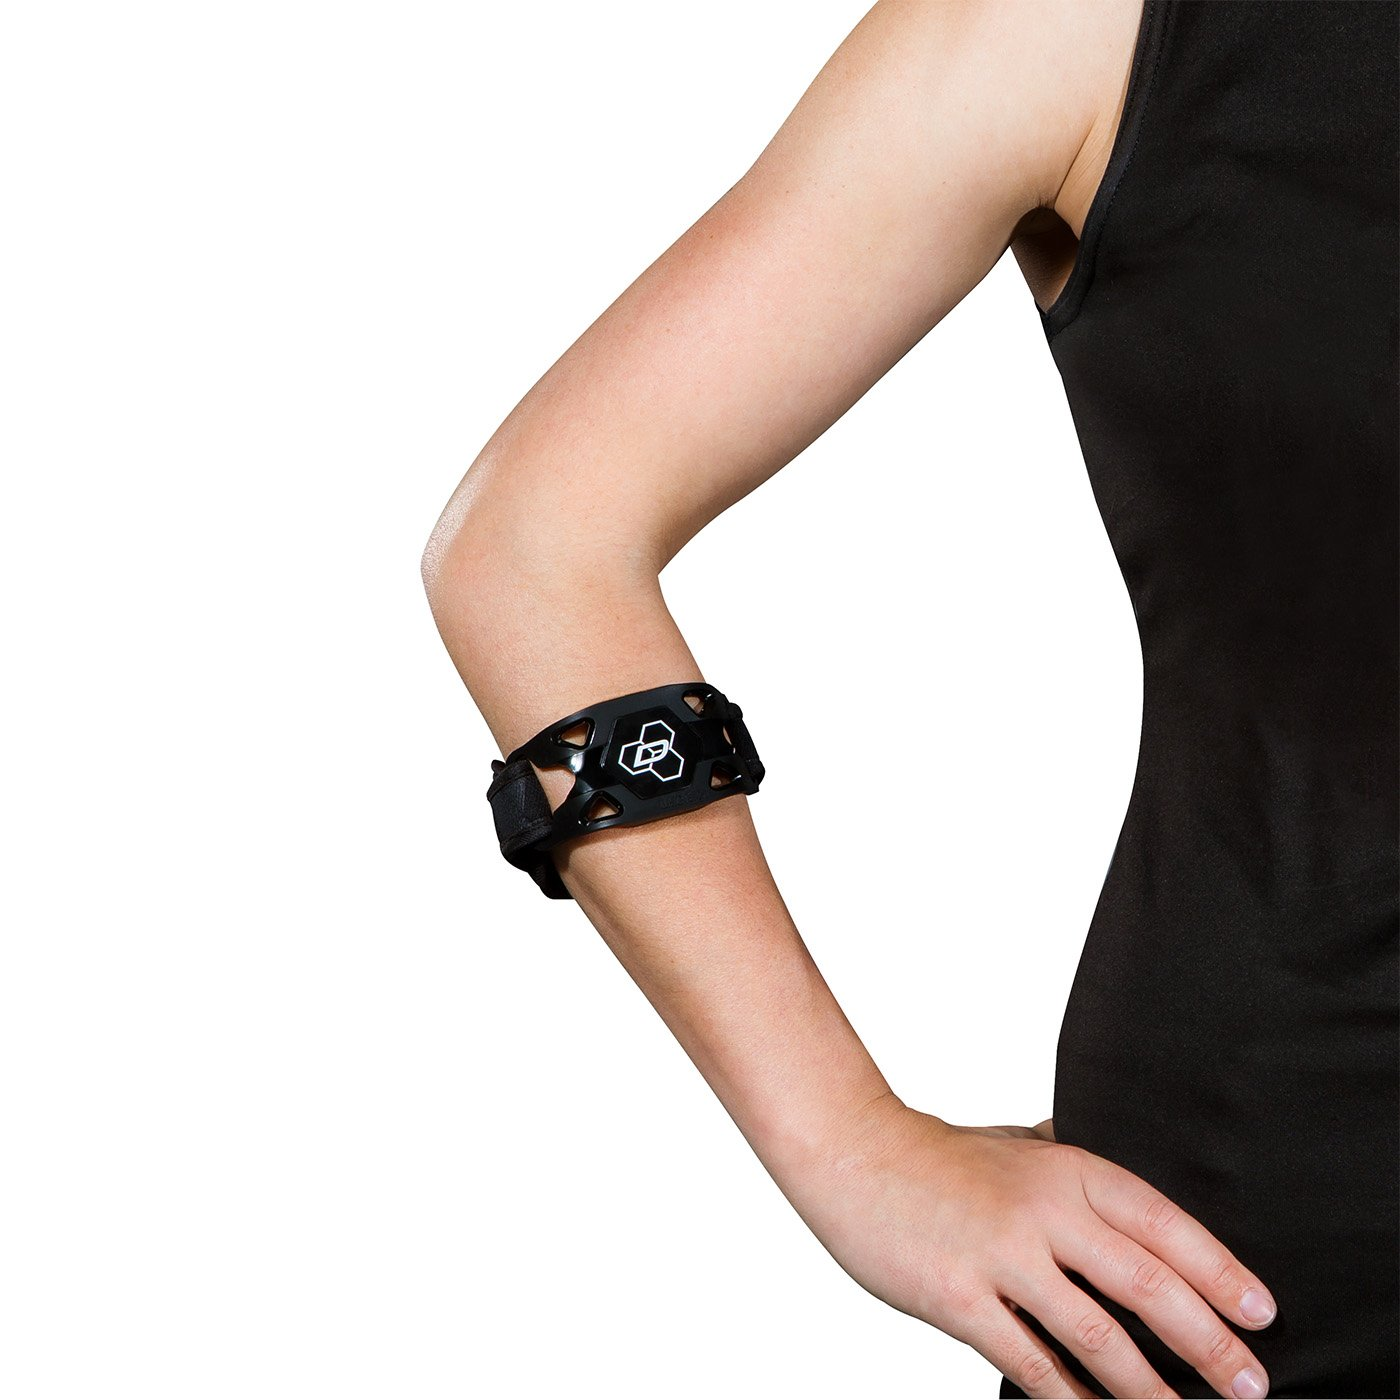 DonJoy Performance WEBTECH Tennis Elbow Strap, Tennis Elbow and Golfer's Elbow, Tendonitis Pain Relief Compression Support Brace - Small/Medium - Black by DonJoy